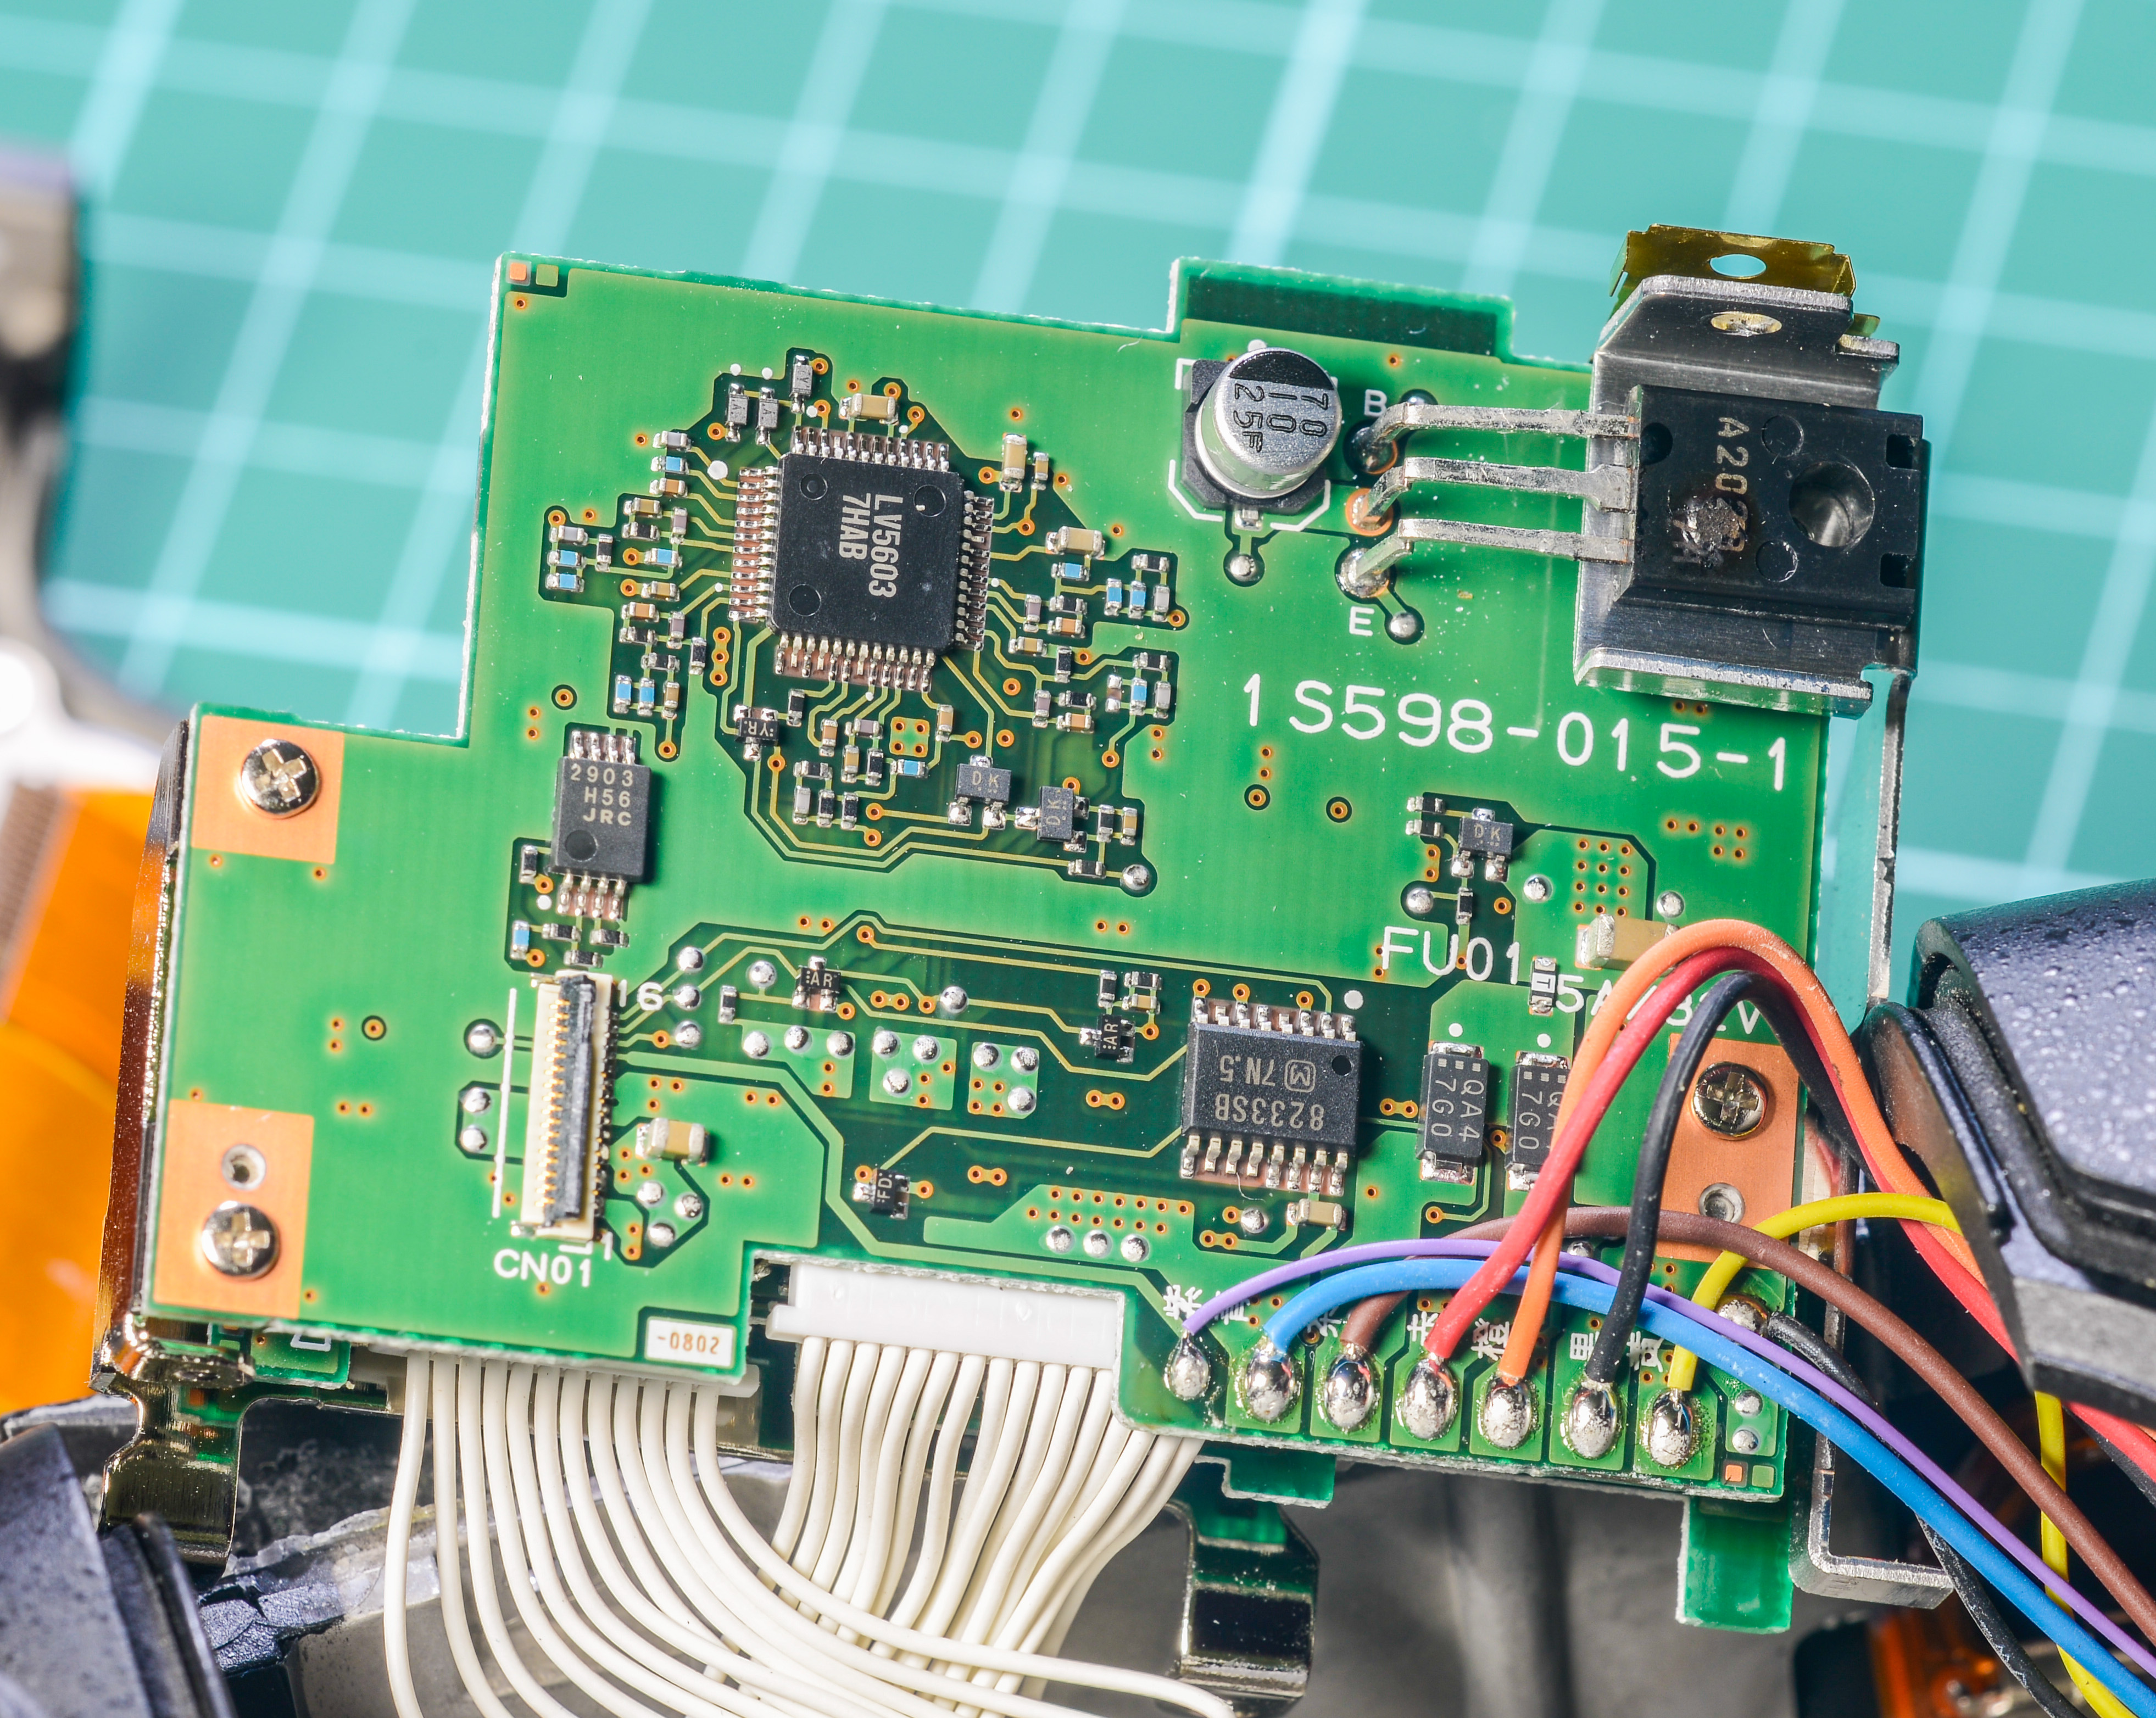 Smoking Circuit Board Repair User Guide Manual That Easy To Read Printed Xdevs Com Experience For Nikon D3 Body Rh Shops Cleaning Solution